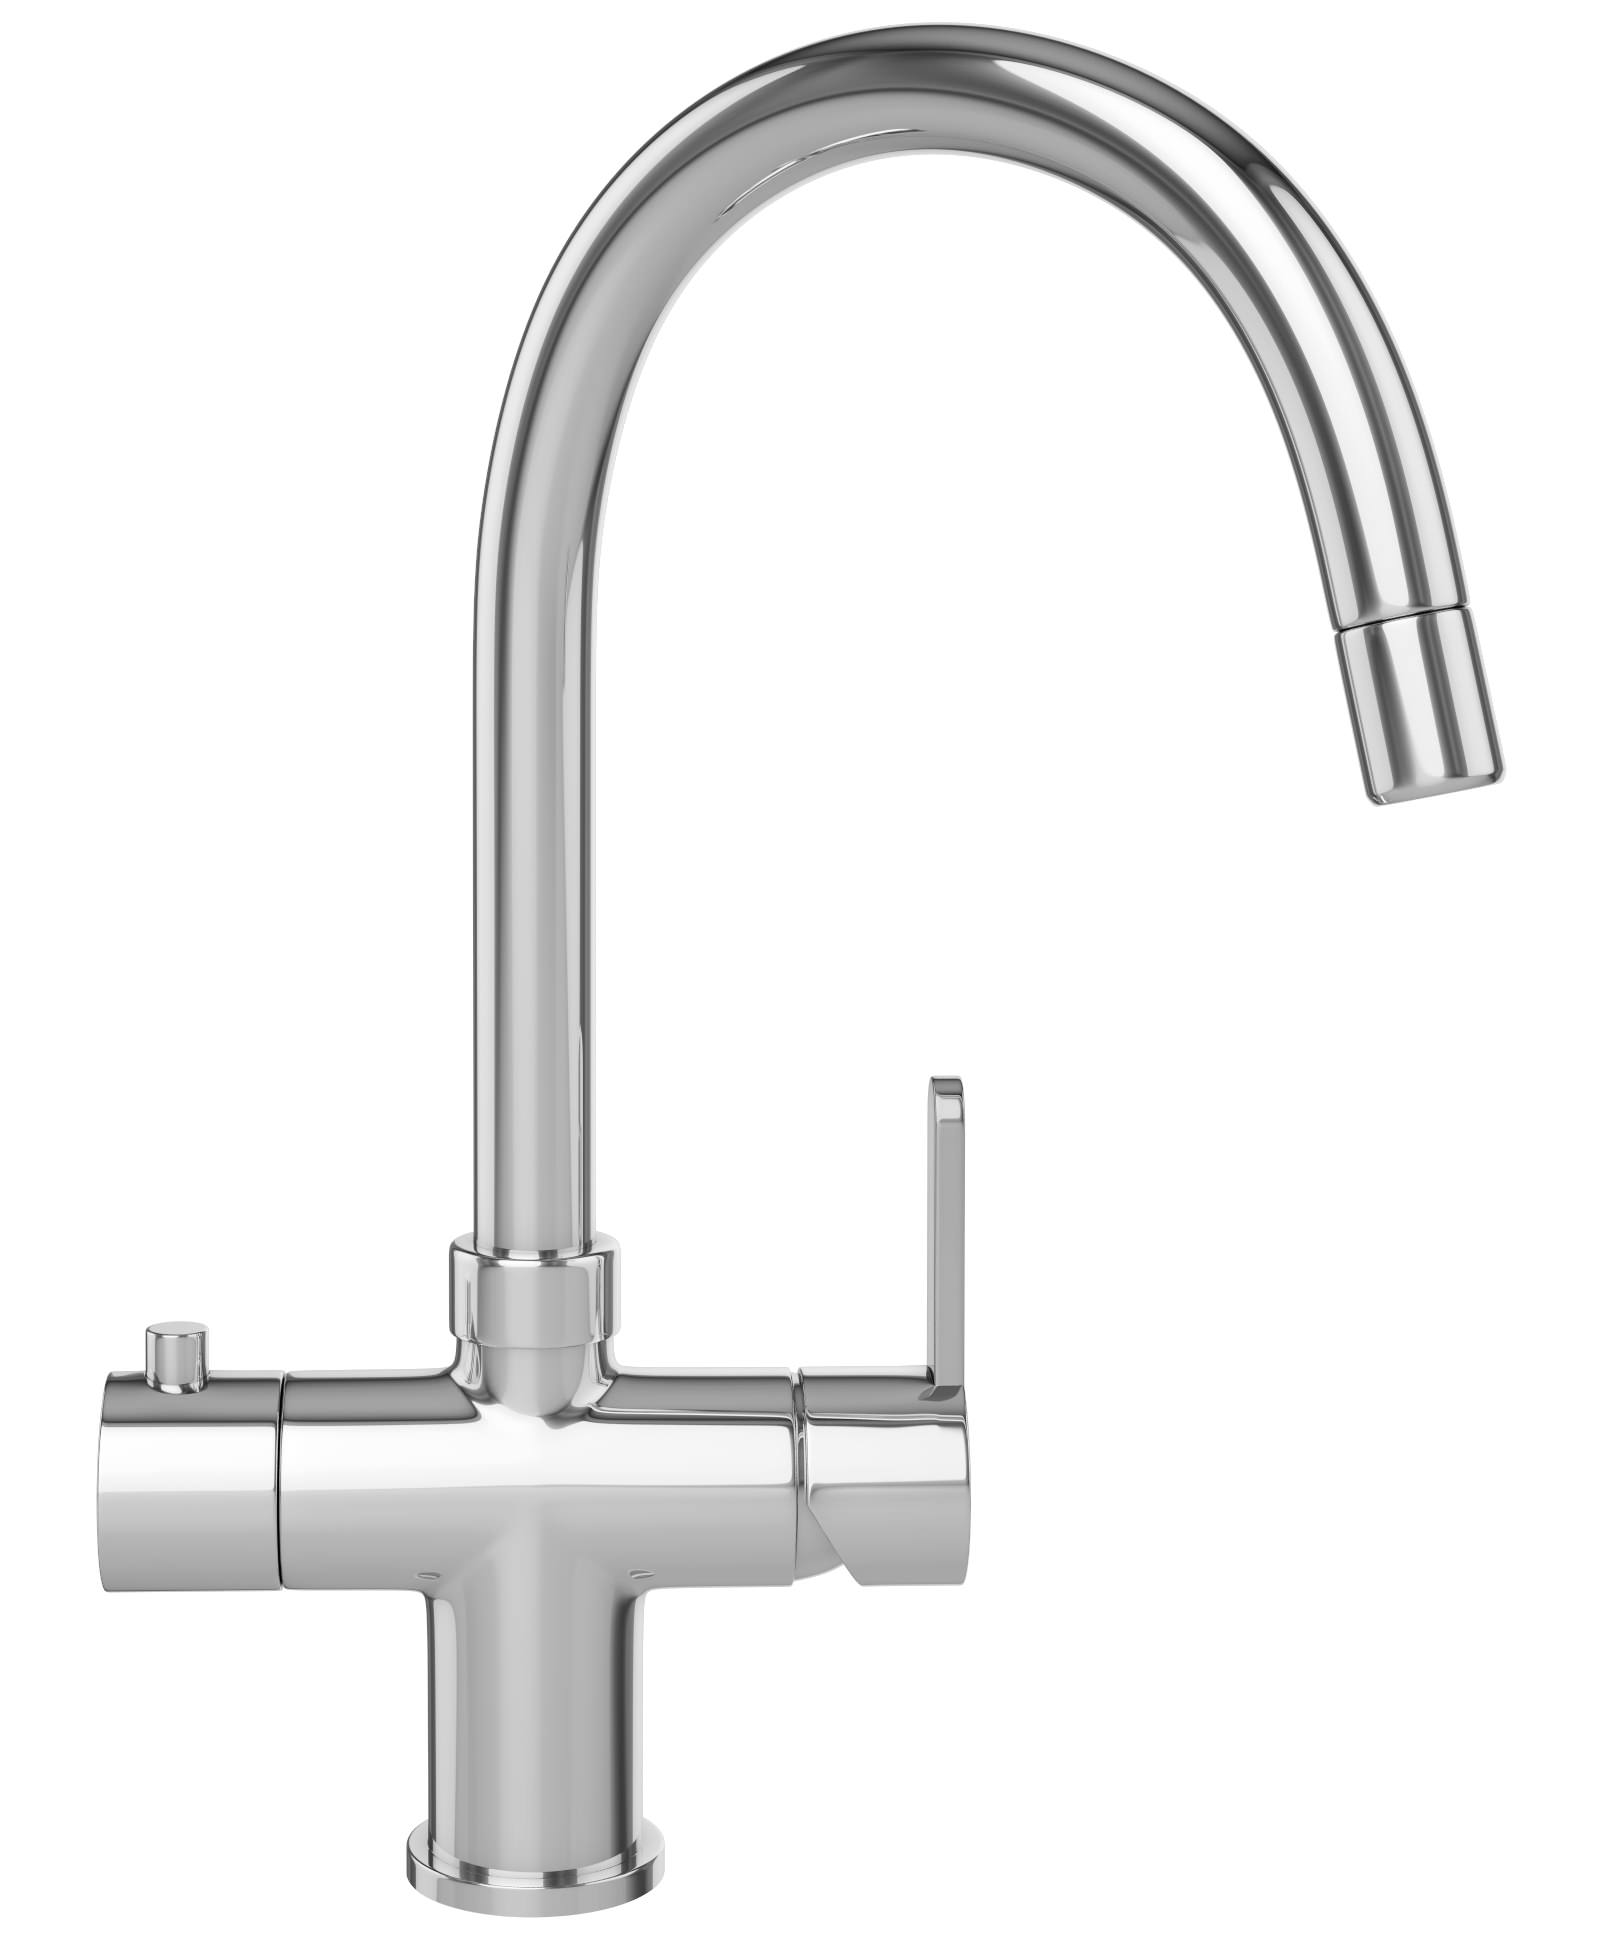 Taps Uk Kitchen Sinks Part - 35: Franke Minerva 3-In-1 Instant Boiling Water Kettle Kitchen Sink Tap